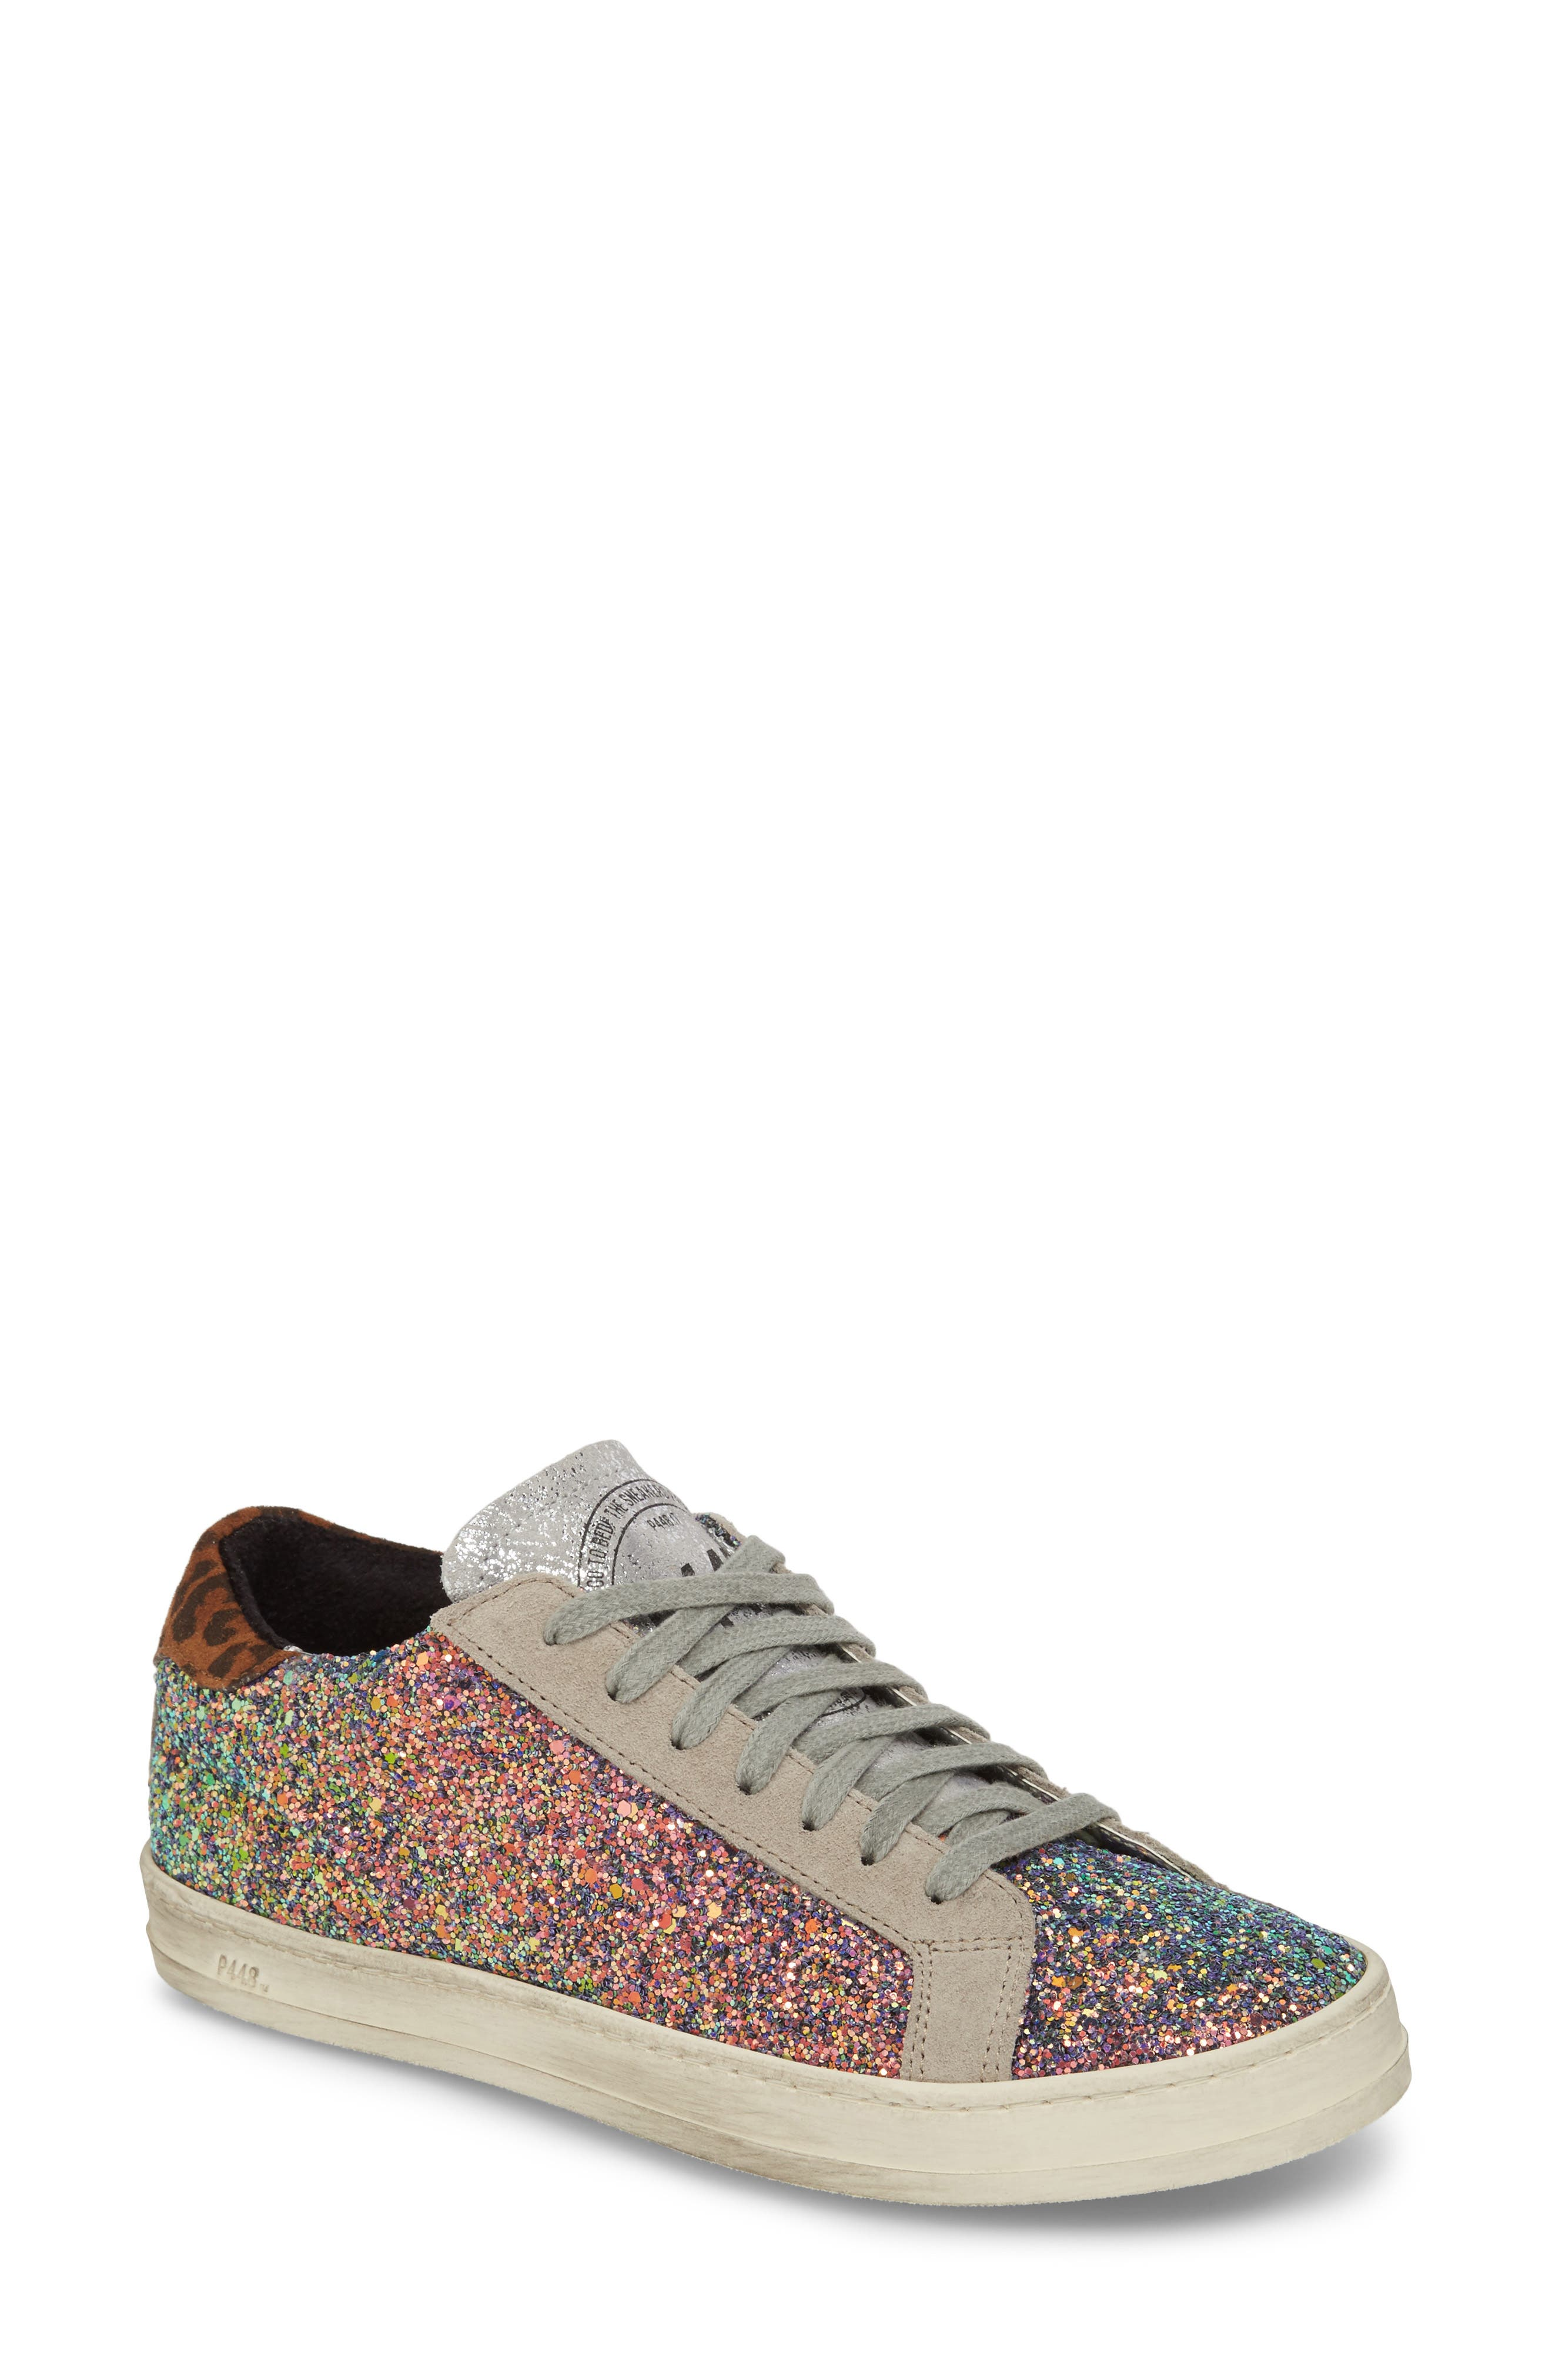 P448 Women'S John Glitter & Suede Lace Up Sneakers in Multicolor